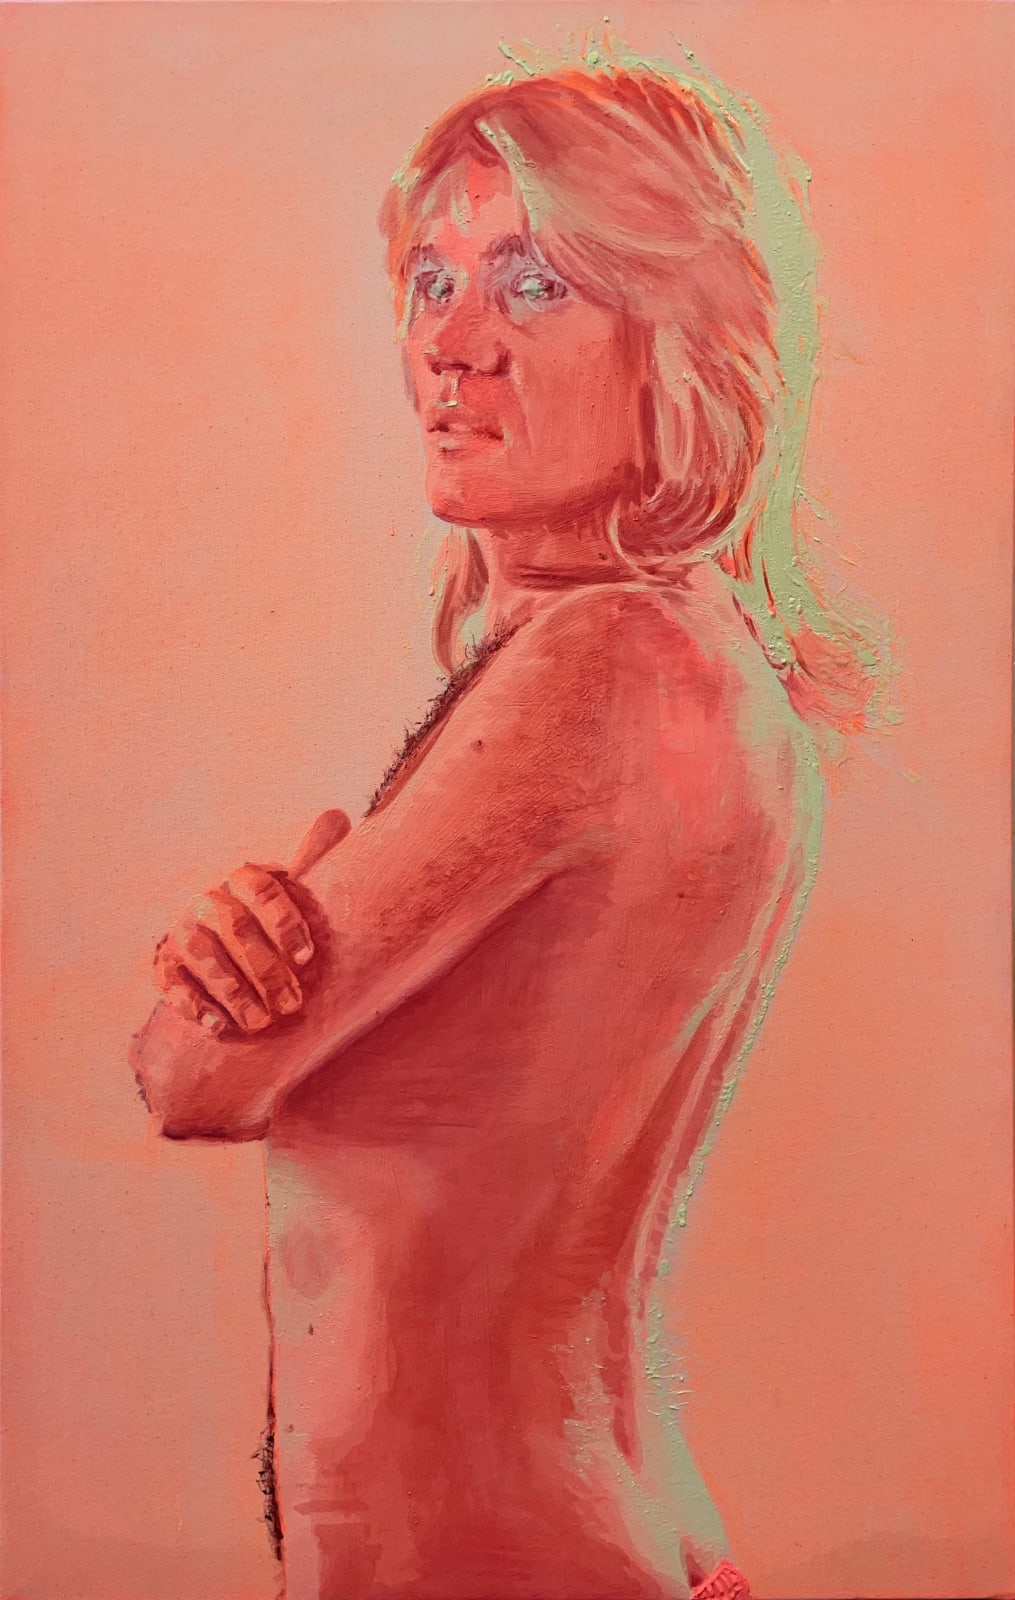 Nina Childress Patrick à poil, 2021 Oil paint and phosphorescent pigments on canvas 51h x 31w in 130h x 81w cm